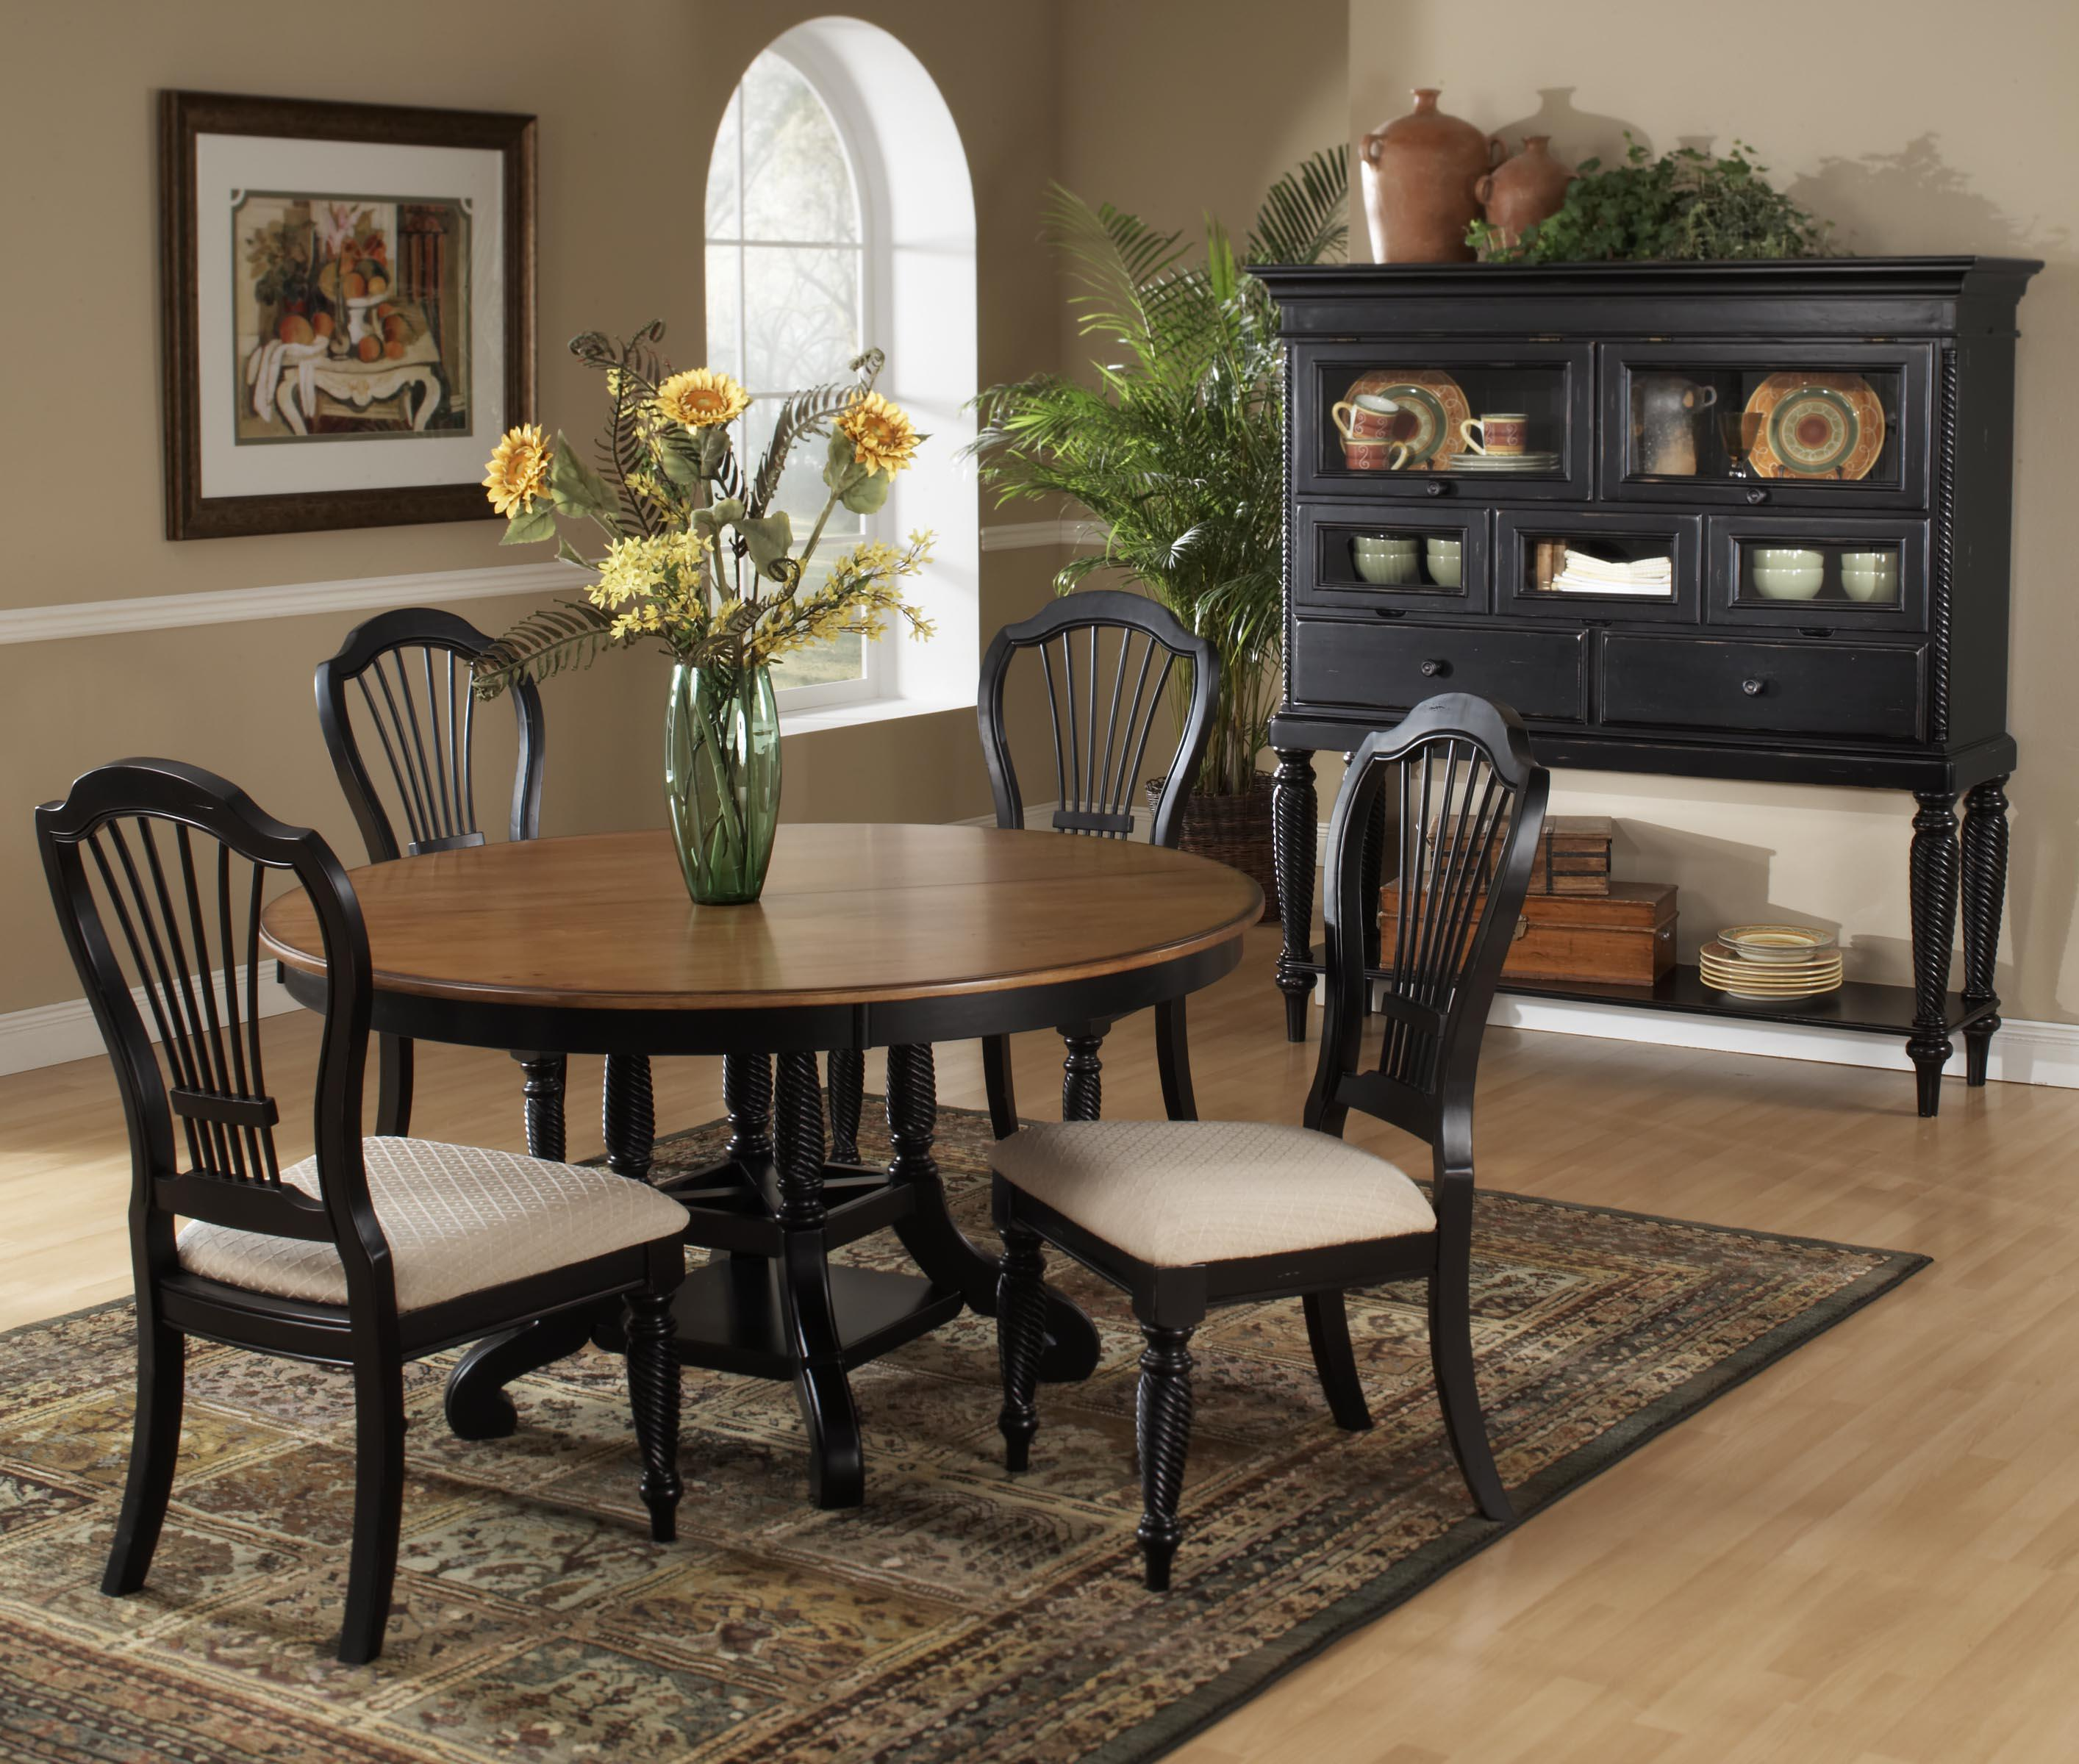 Hillsdale Wilshire Round Two Tone Leaf Dining Table   Westrich Furniture U0026  Appliances   Dining Tables